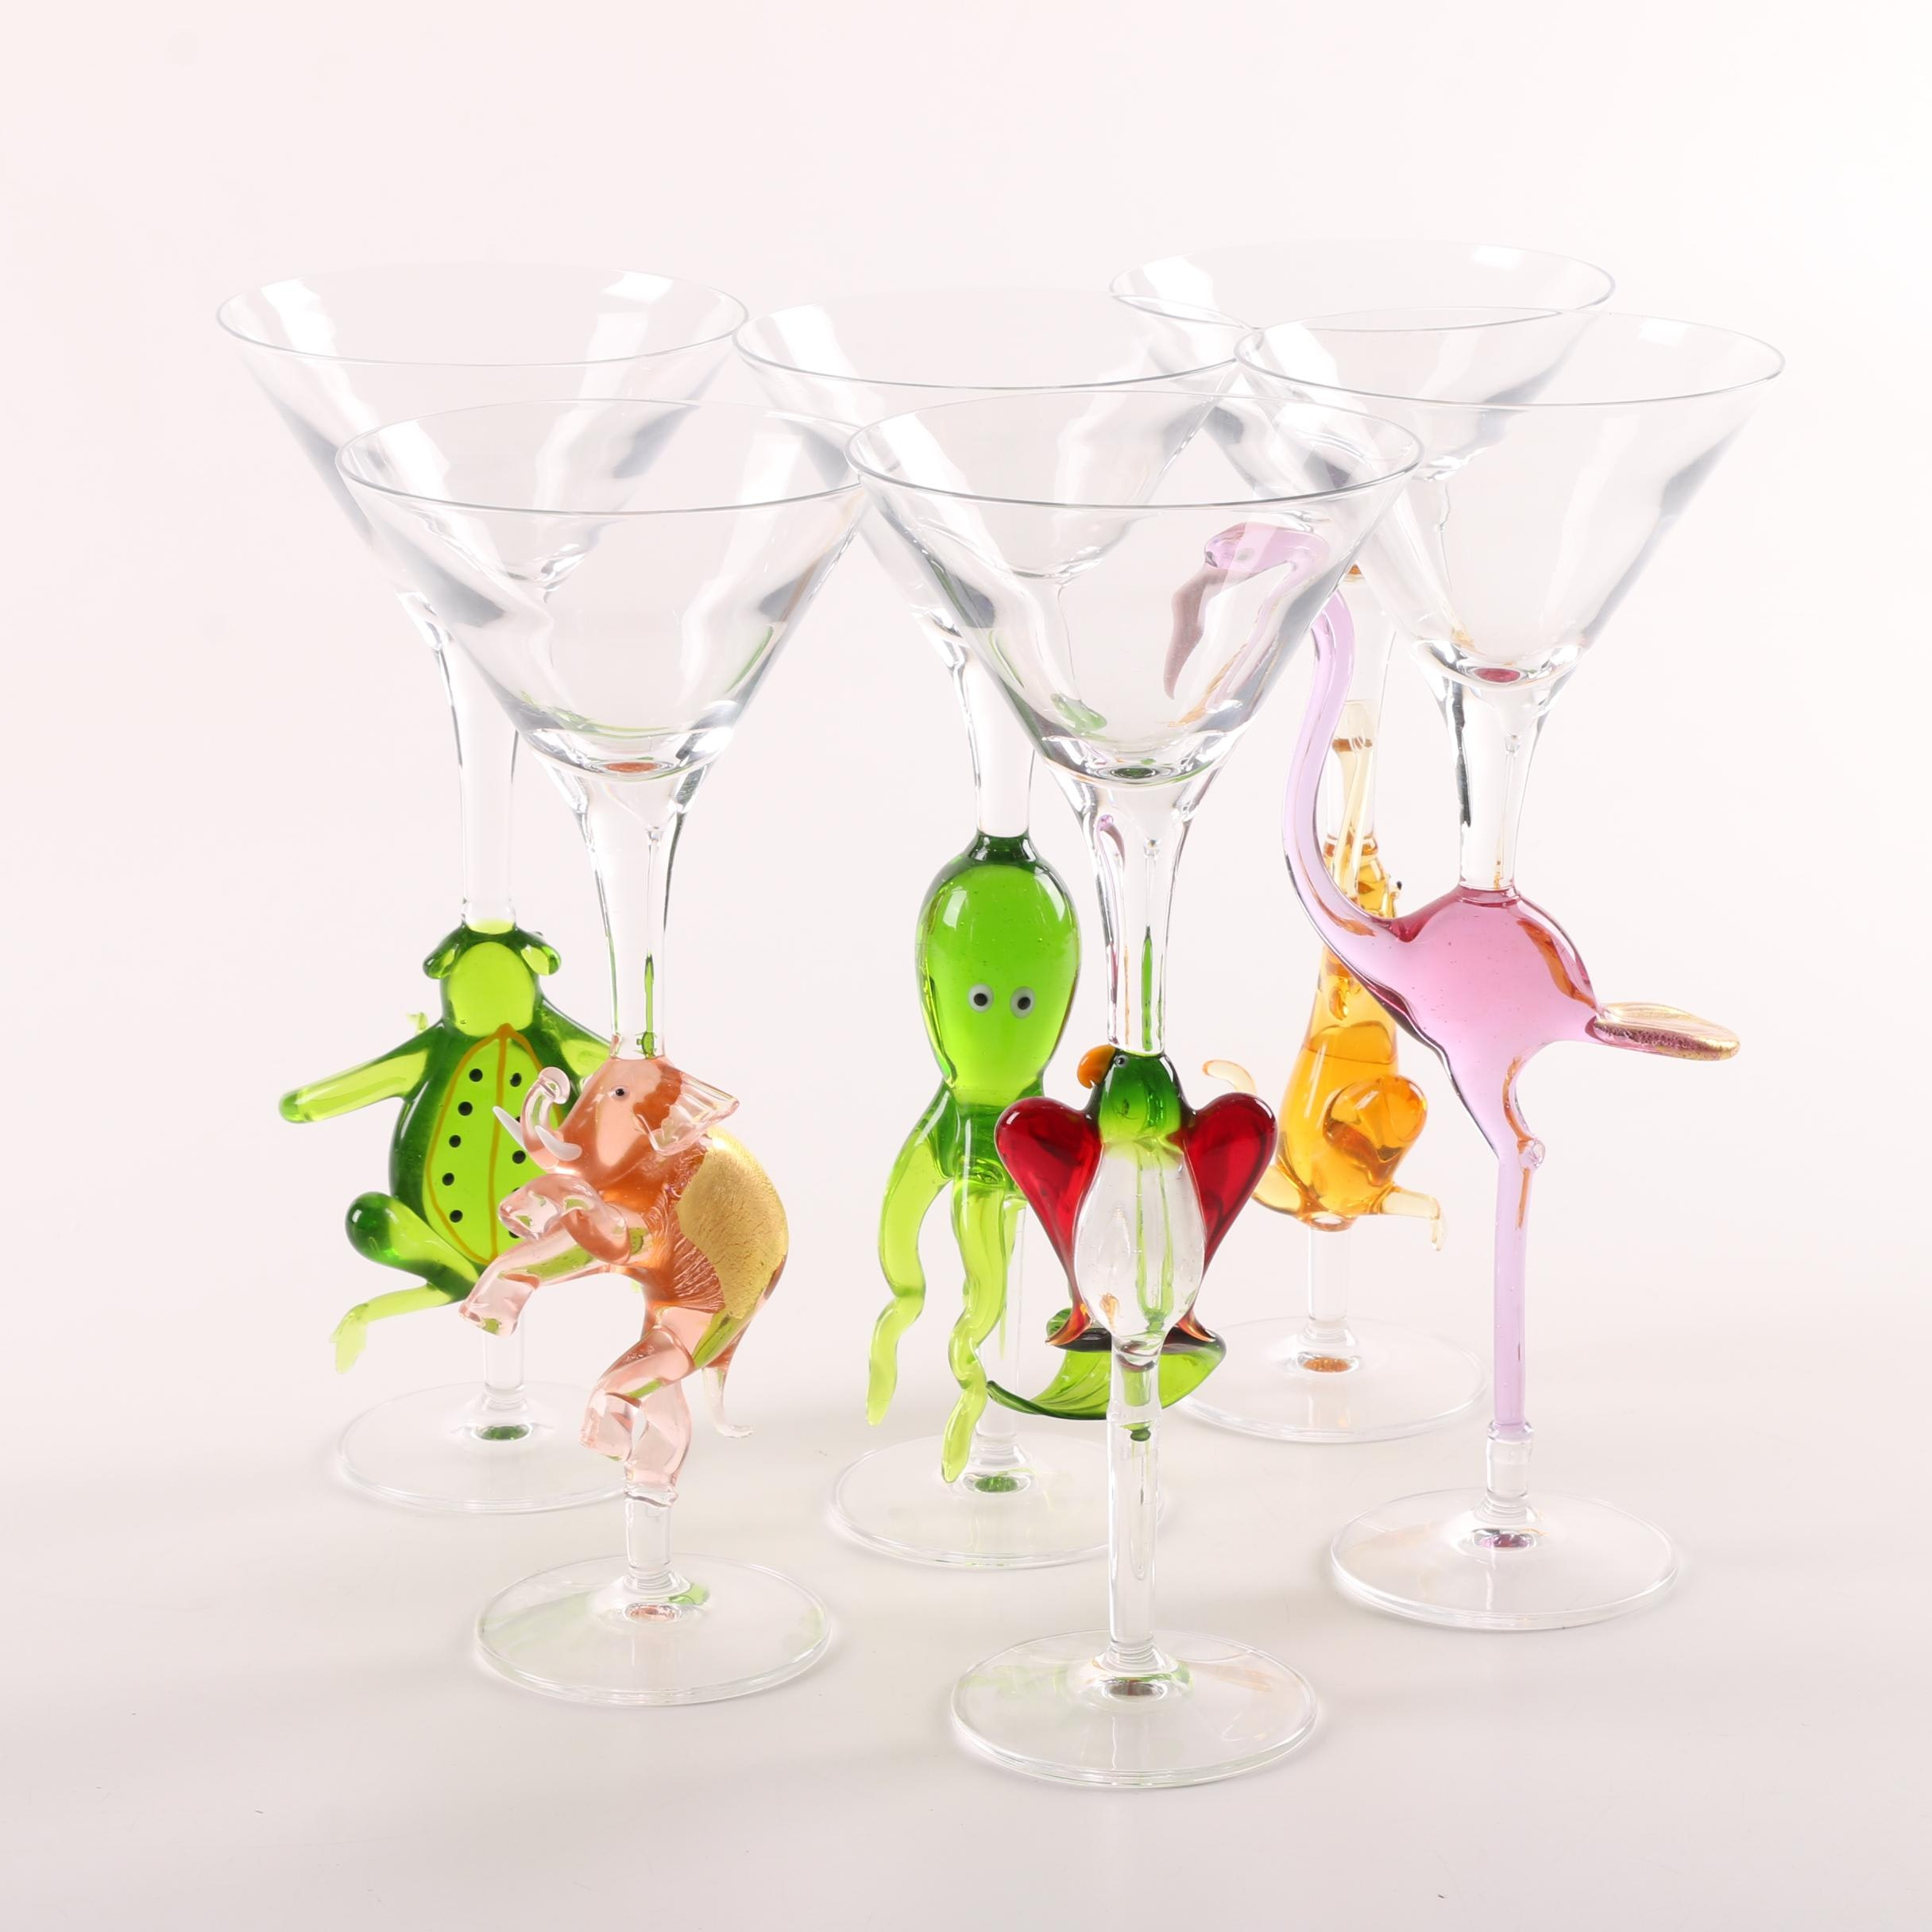 Martini Glasses with Animal Shaped Stems